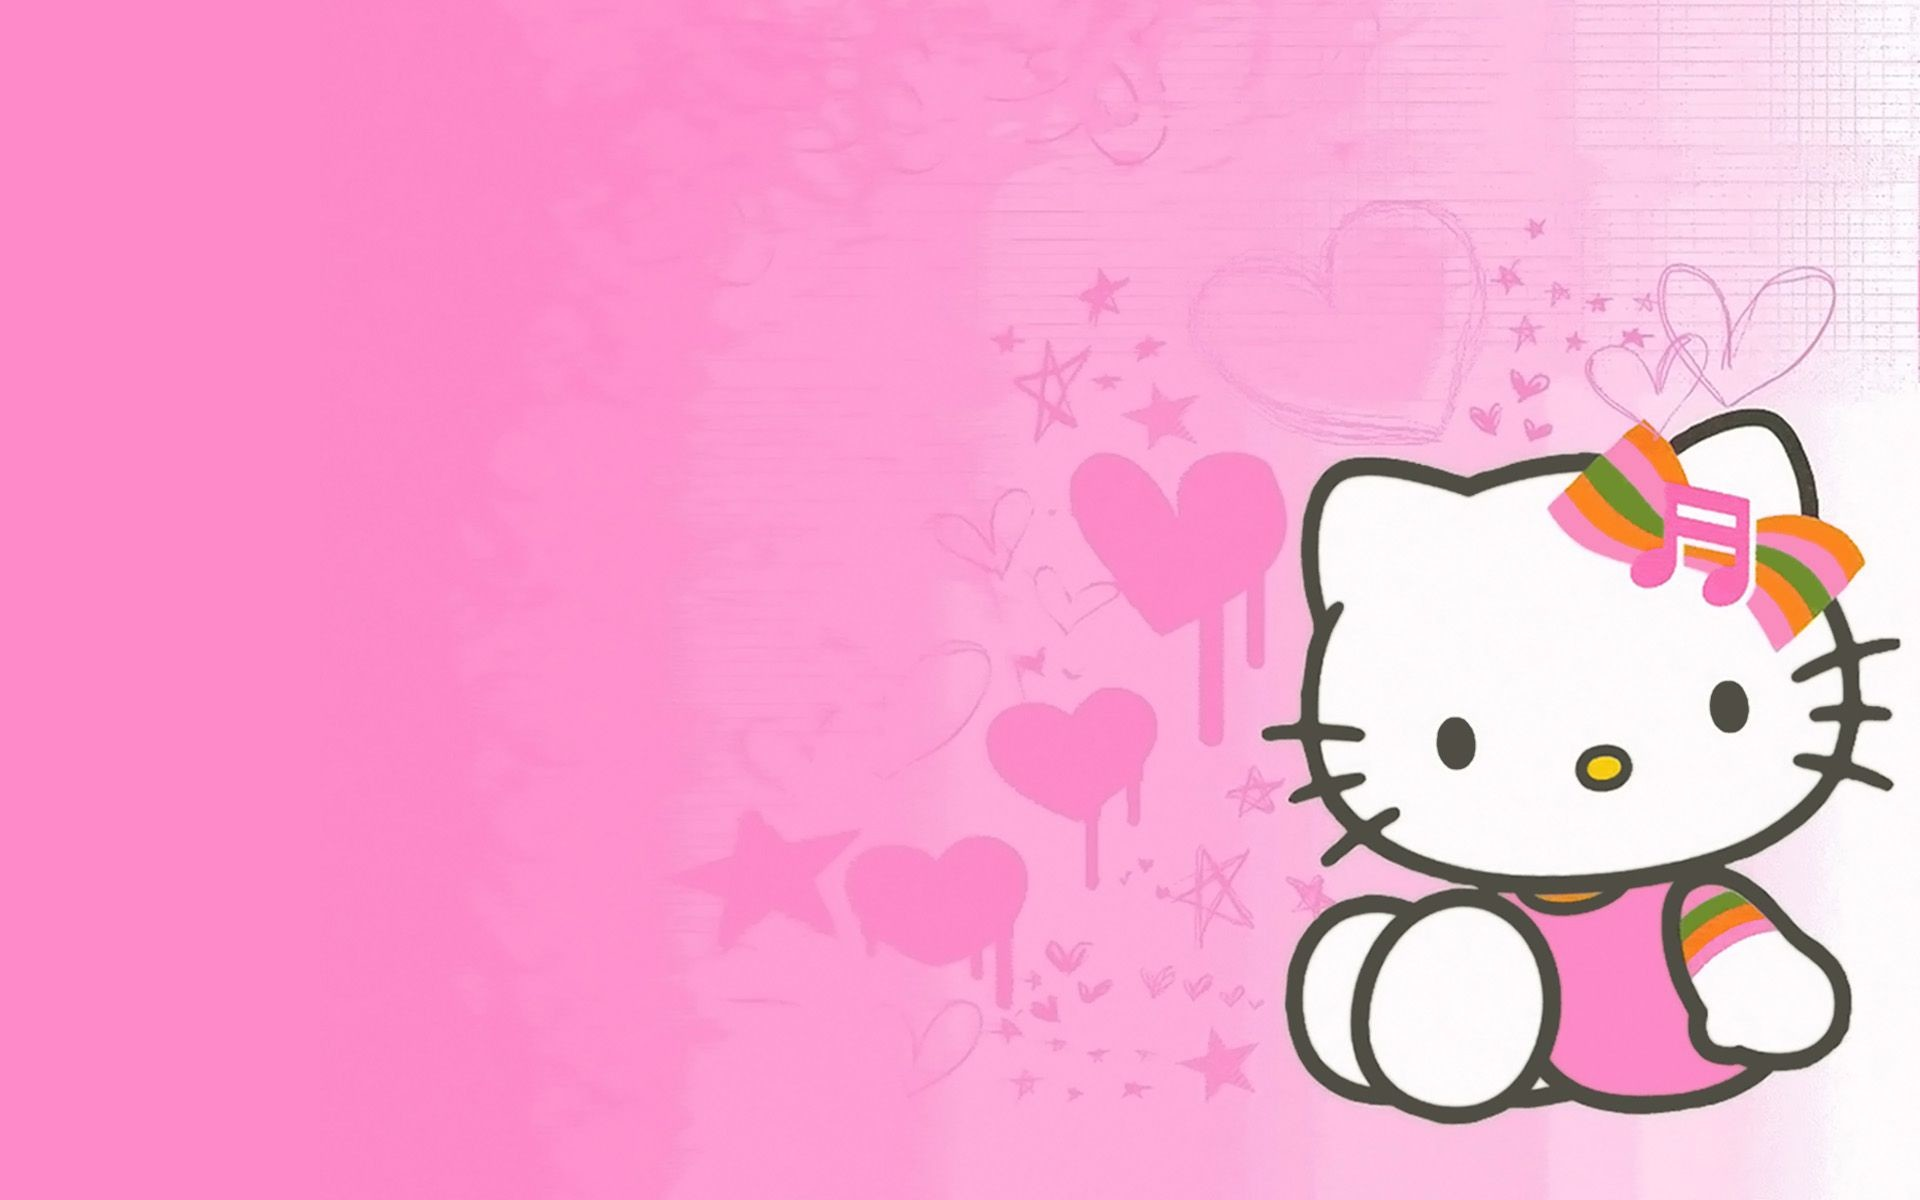 Wallpaper Background Hello Kitty